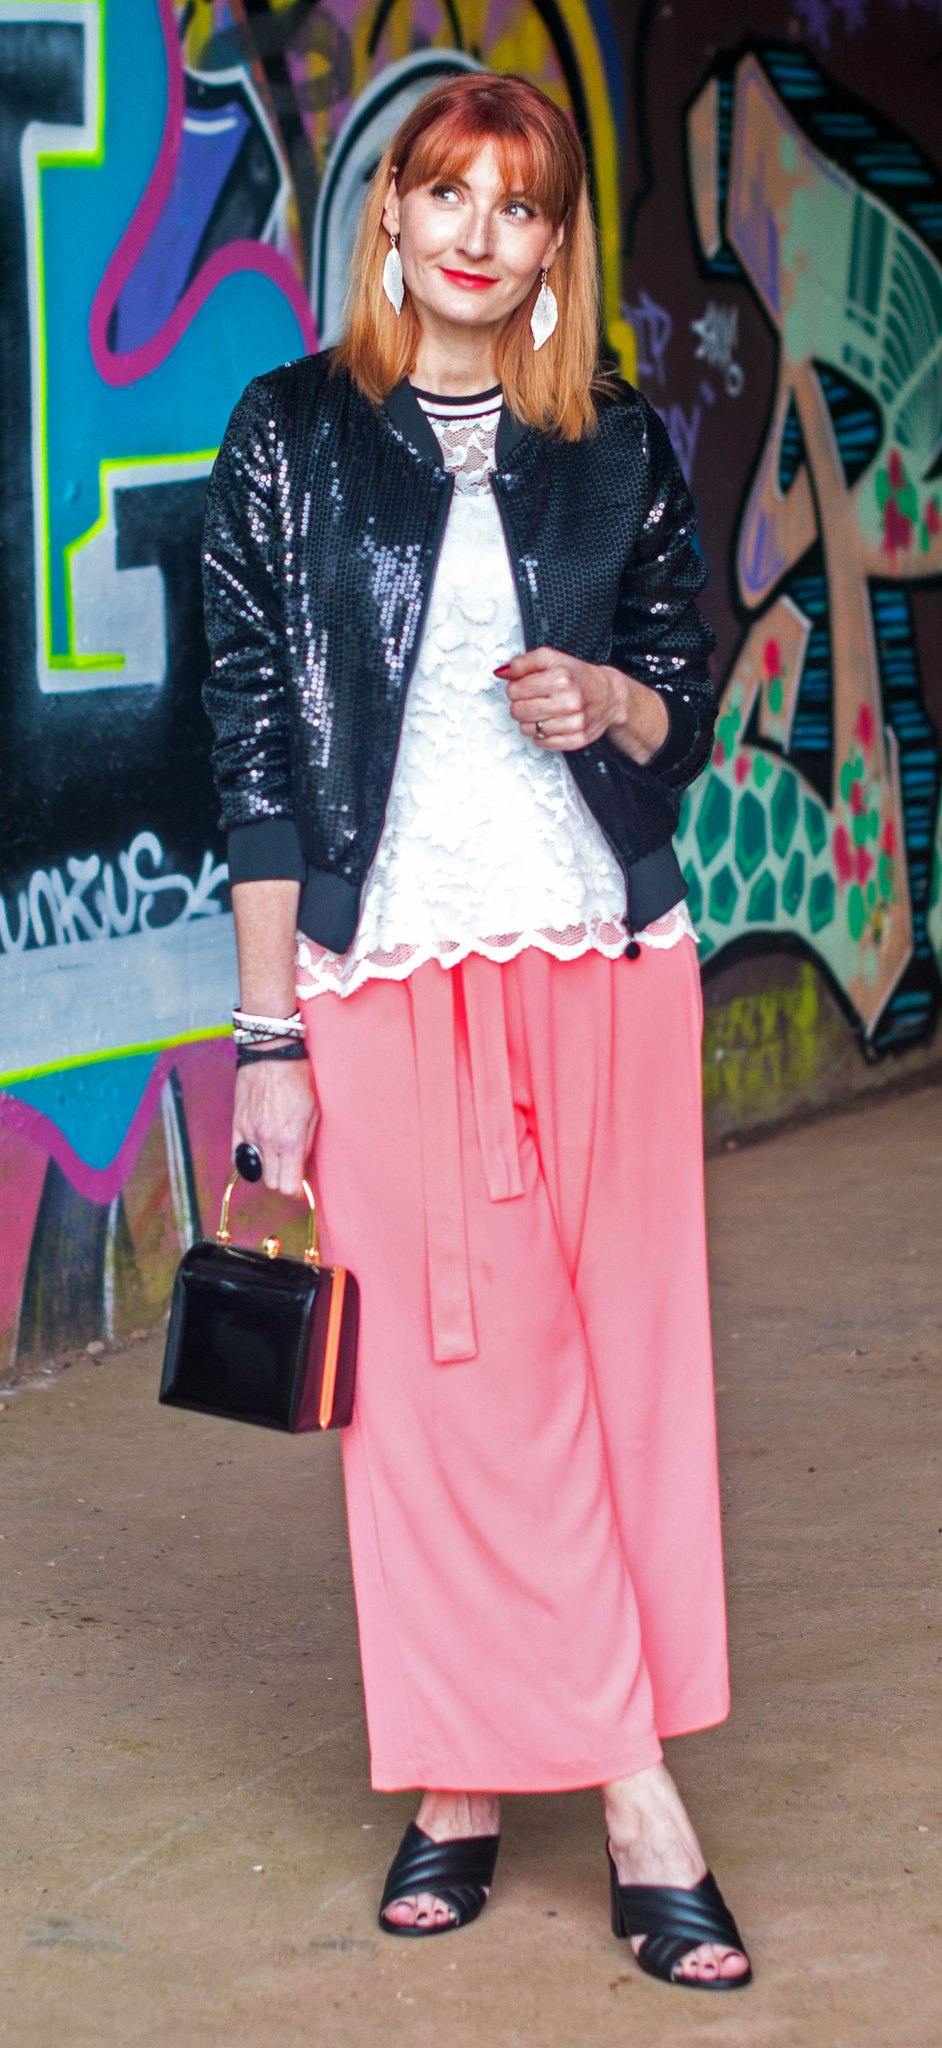 A day-to-night summer outfit: Sequin bomber jacket \ sporty lace top \ coral cropped trousers wide leg pants culottes \ rose gold espadrilles \ black crossover mules | Not Dressed As Lamb, over 40 style